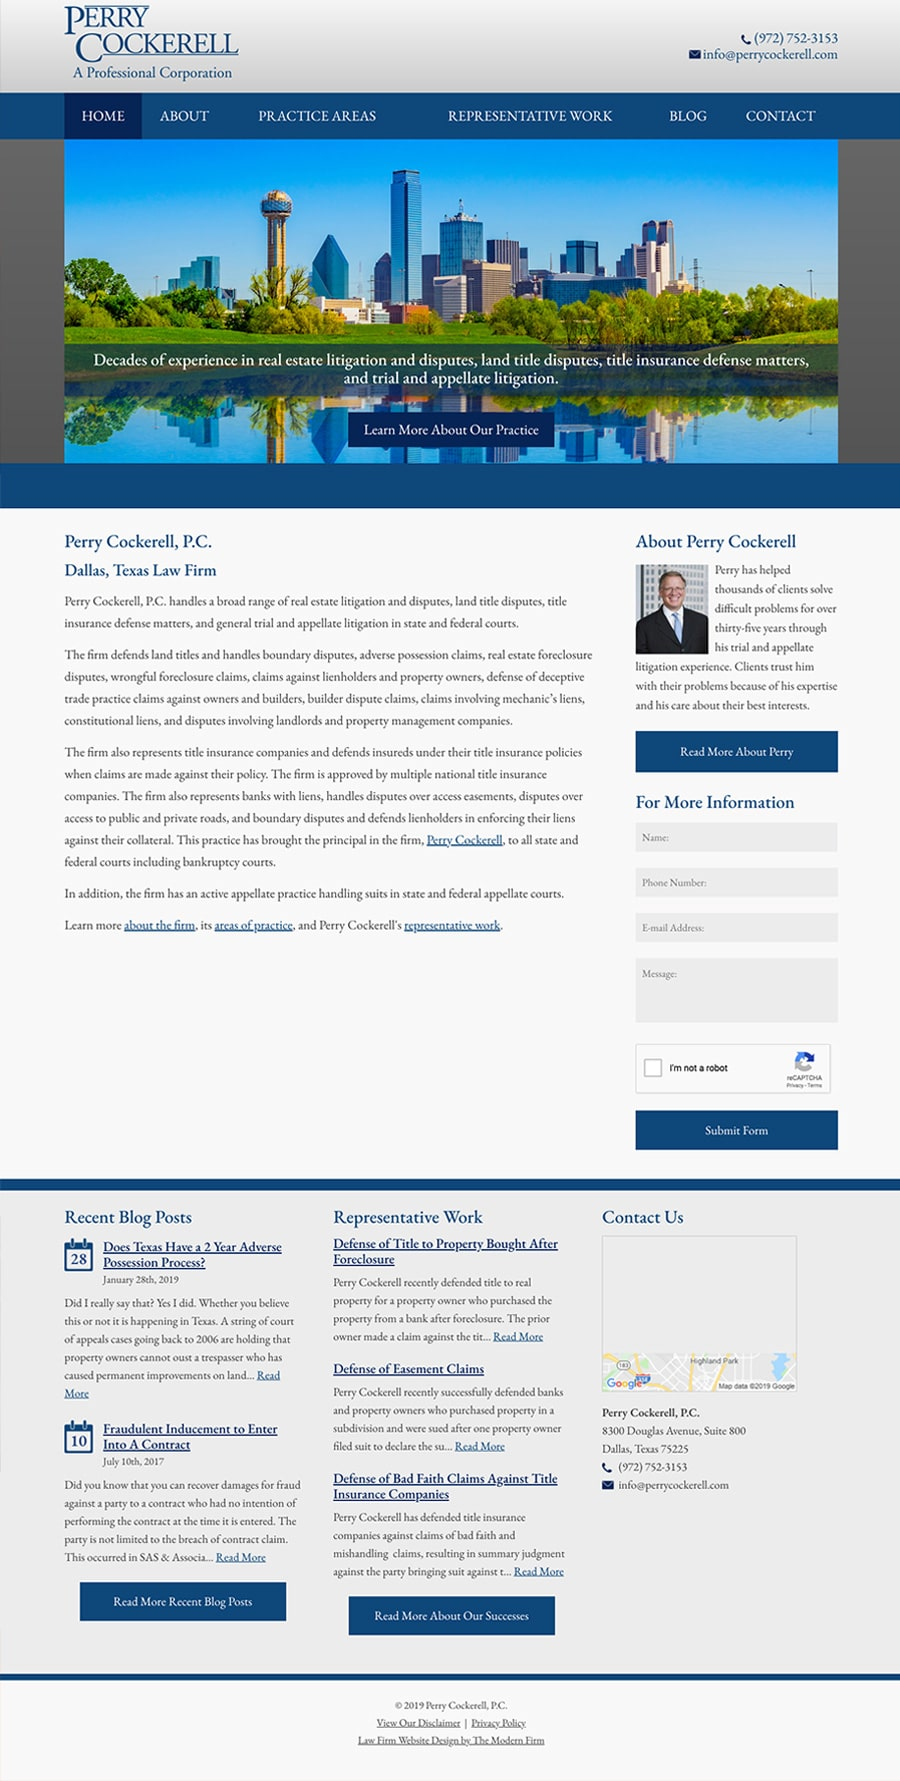 Law Firm Website Design for Perry Cockerell, P.C.